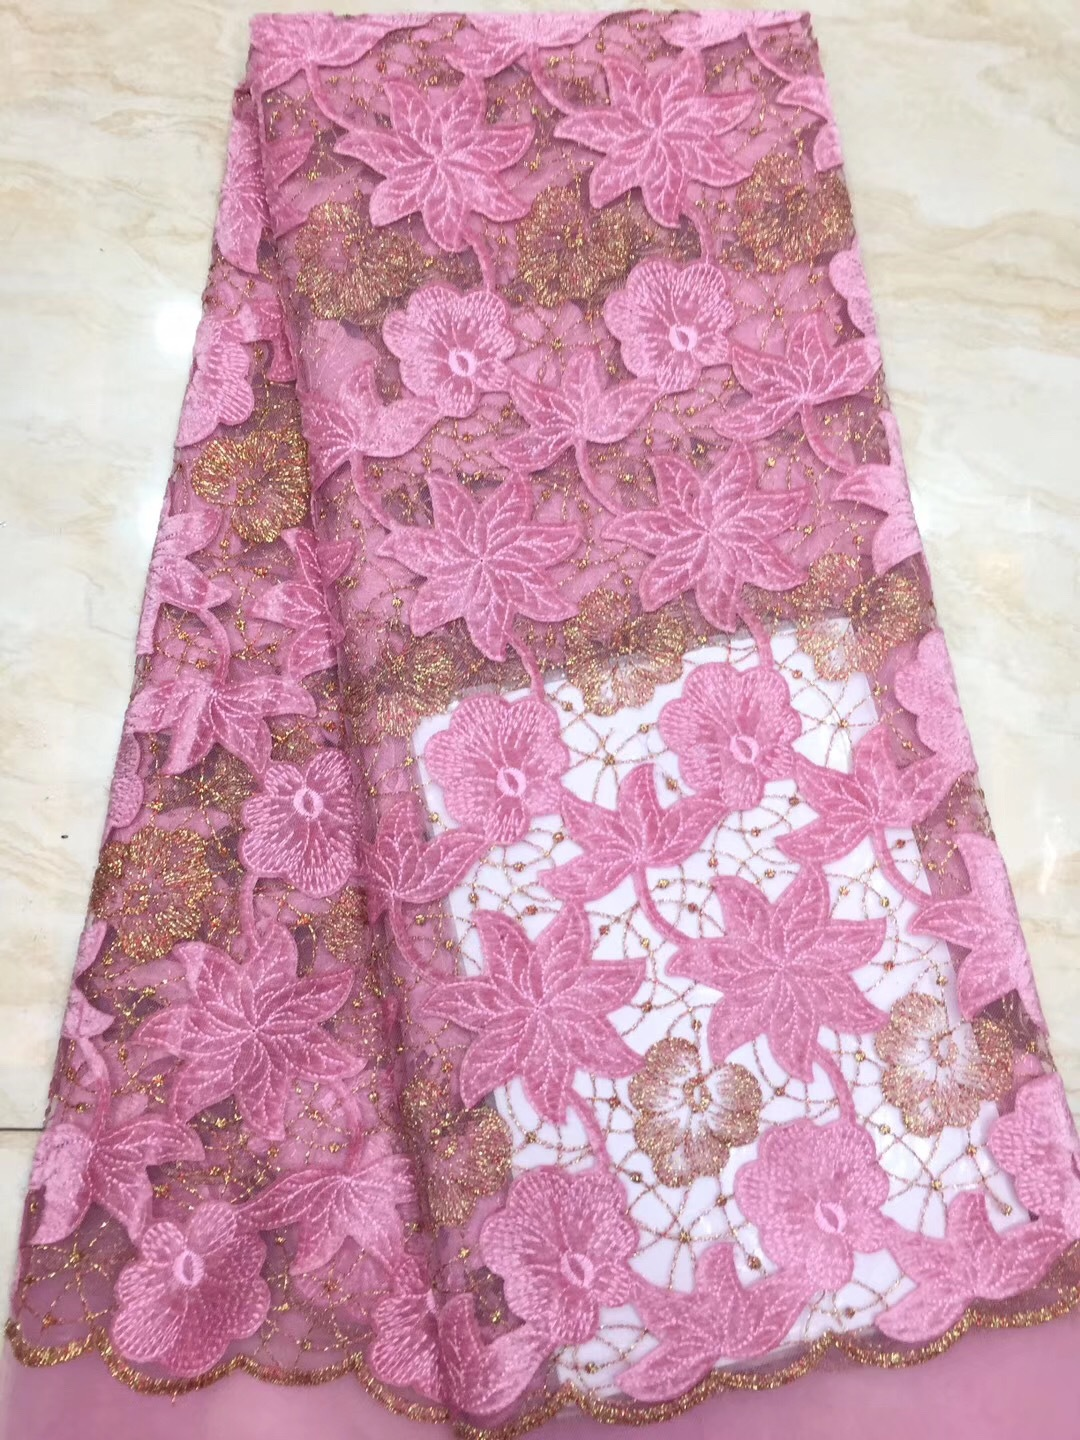 Pink Lace Fabric Gold Thread Embroidered Mesh Fabric 2020 Home Furnishing Apparel Dress Supply For Women Dress Party Wedding